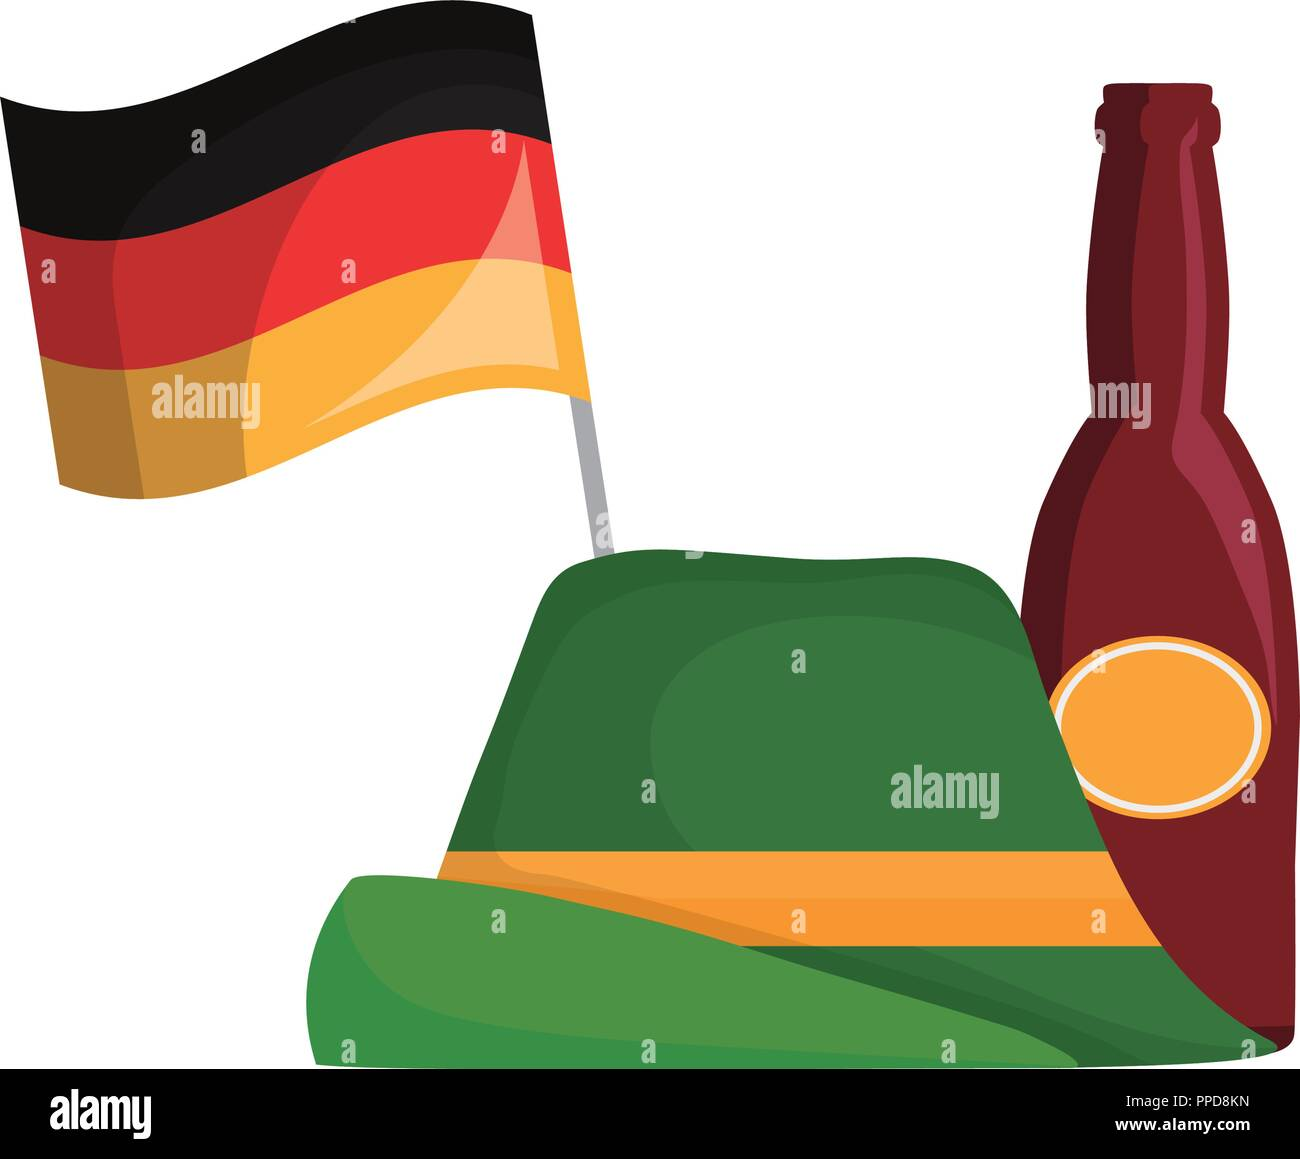 oktoberfest hat germany flag and beer bottle vector illustration - Stock Image